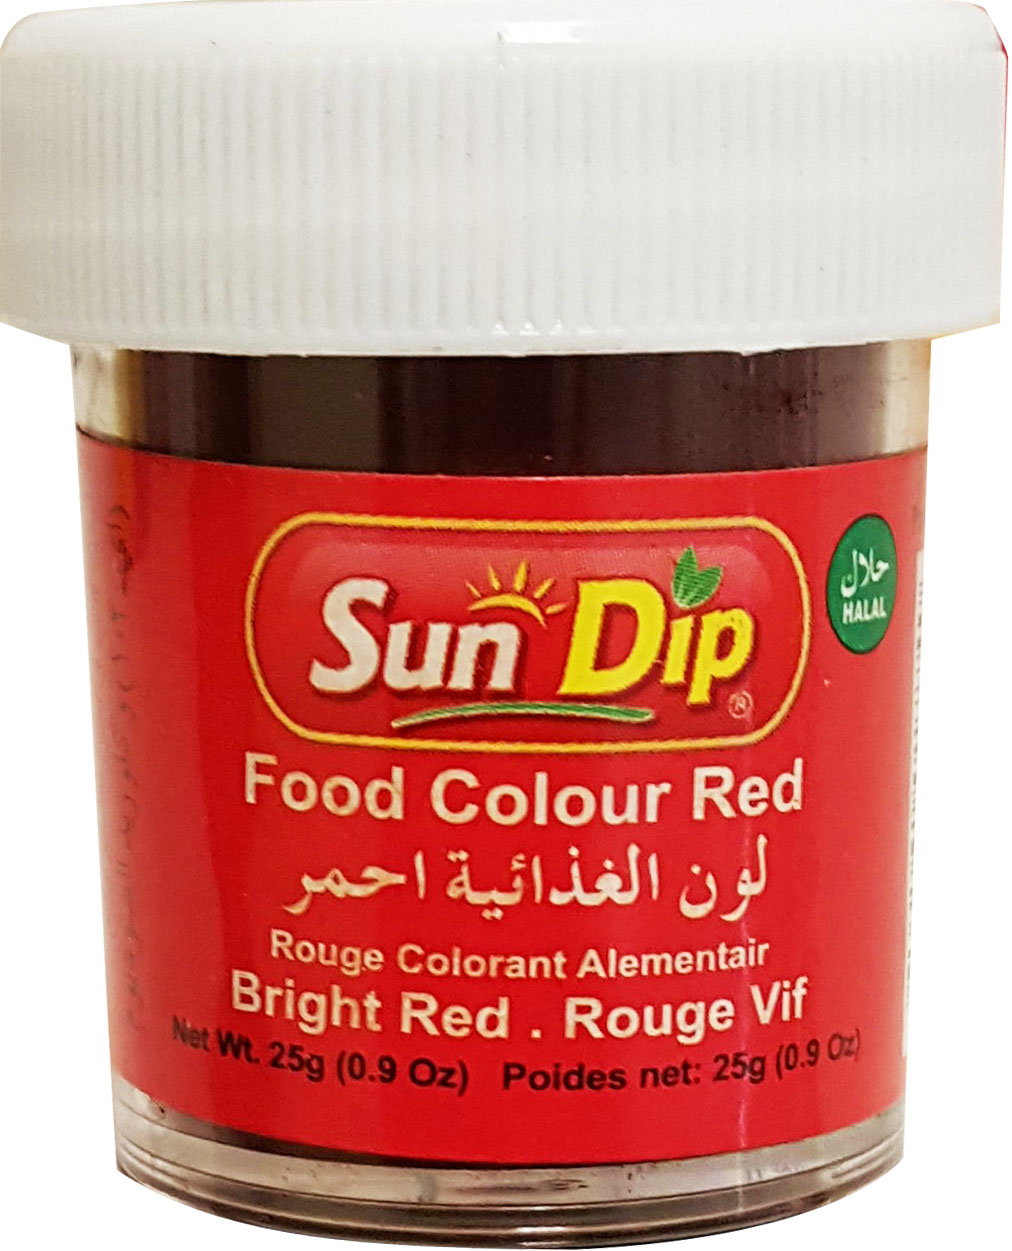 Sundip Food Colour Red